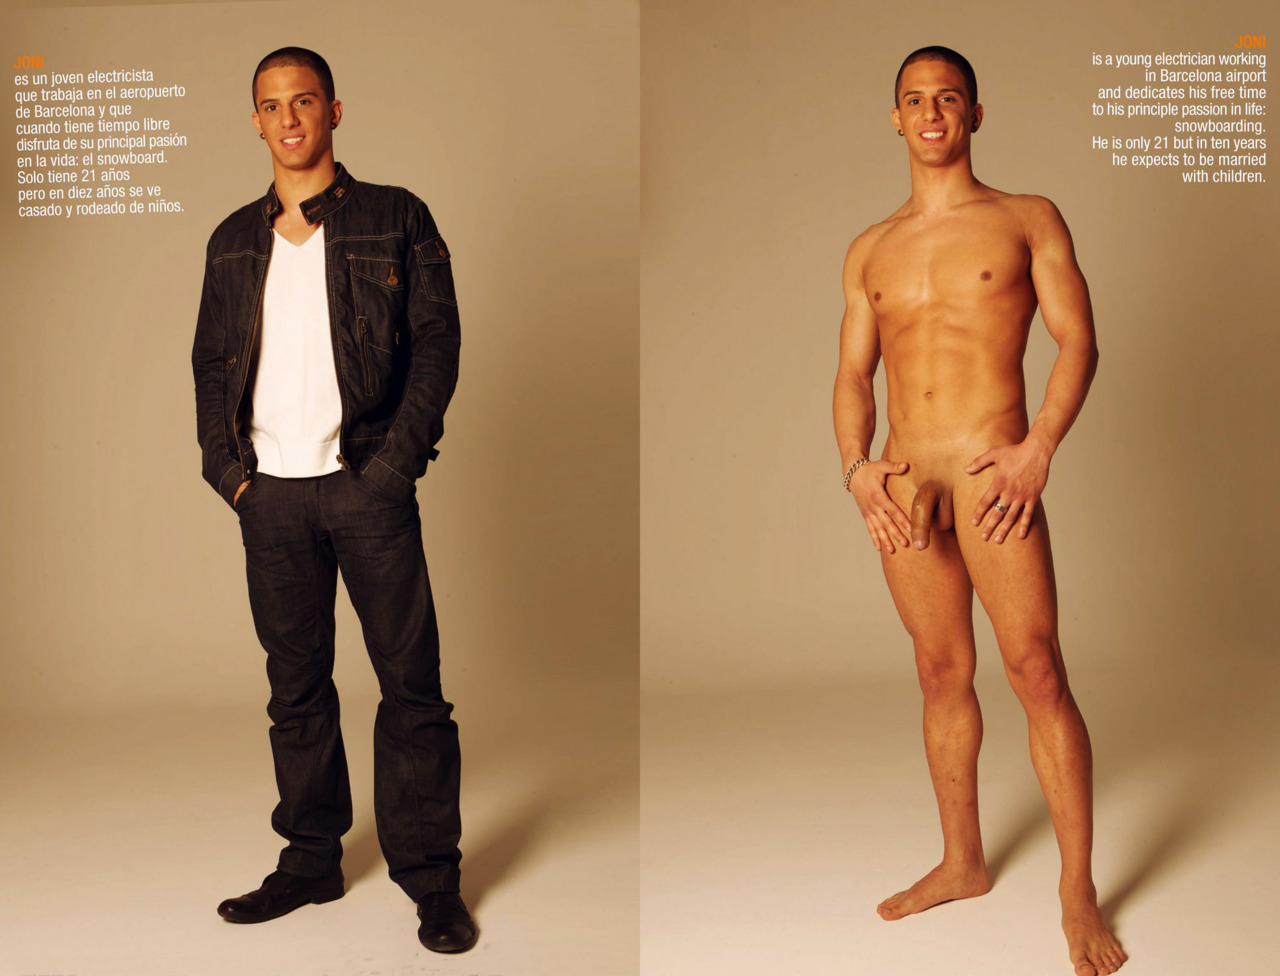 Clothed fmale naked male